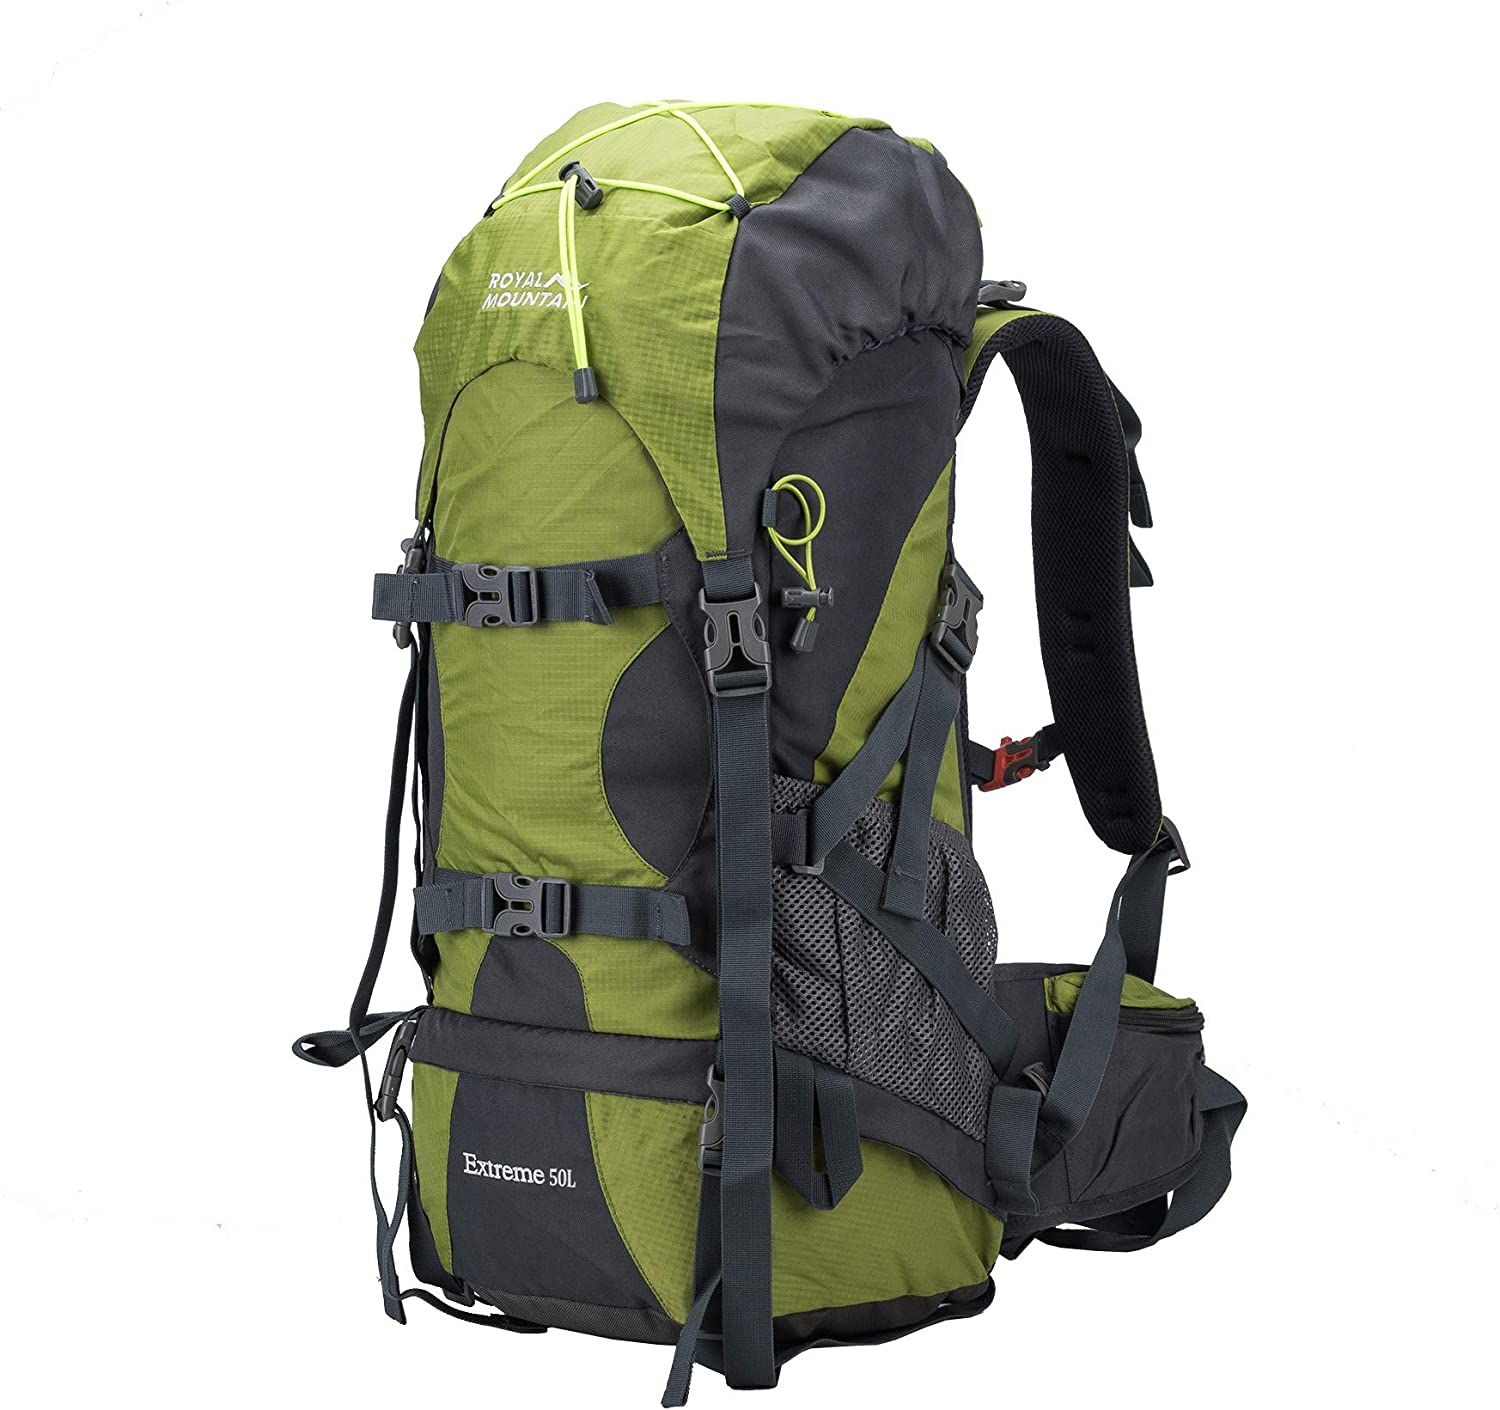 OMORC Lightweight Foldable Backpack, Small Hiking Backpack for Women Men, Water Resistant Packable Hiking Daypack, Durable Portable Hiking Backpack for Day Hiking, Day Trip, Beach, Camping